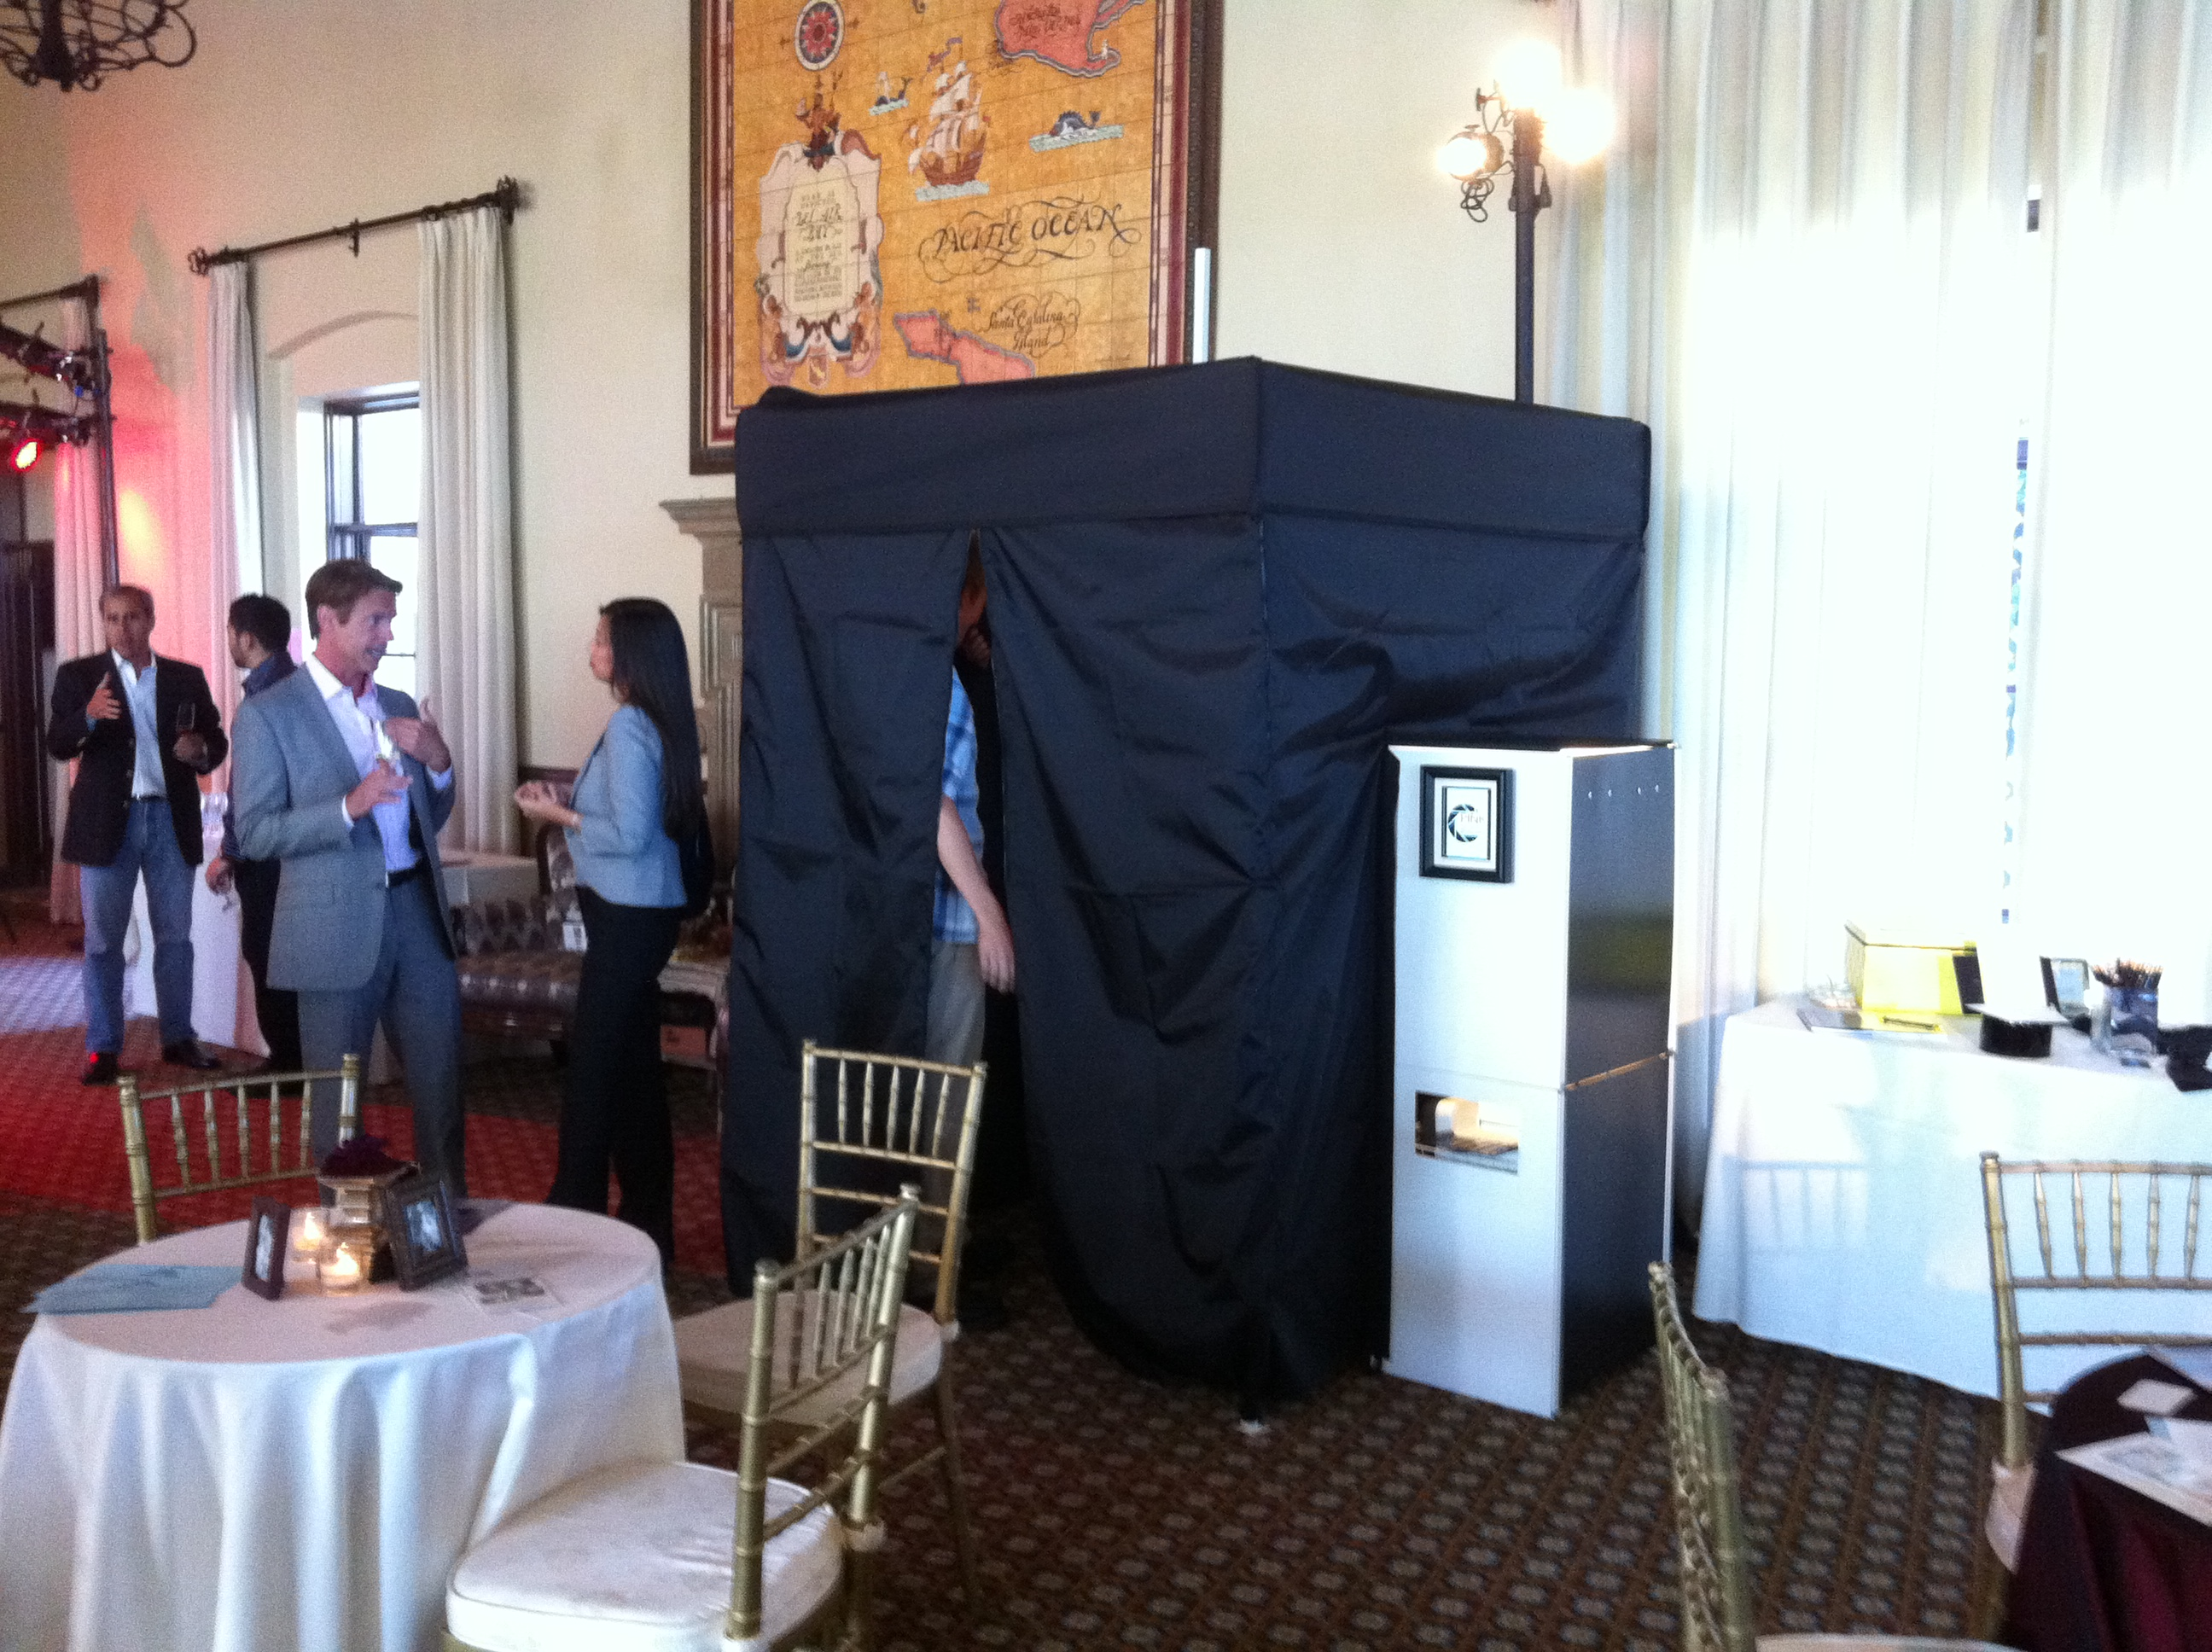 Guests Using Photo Booth at Bel Air Bay Club